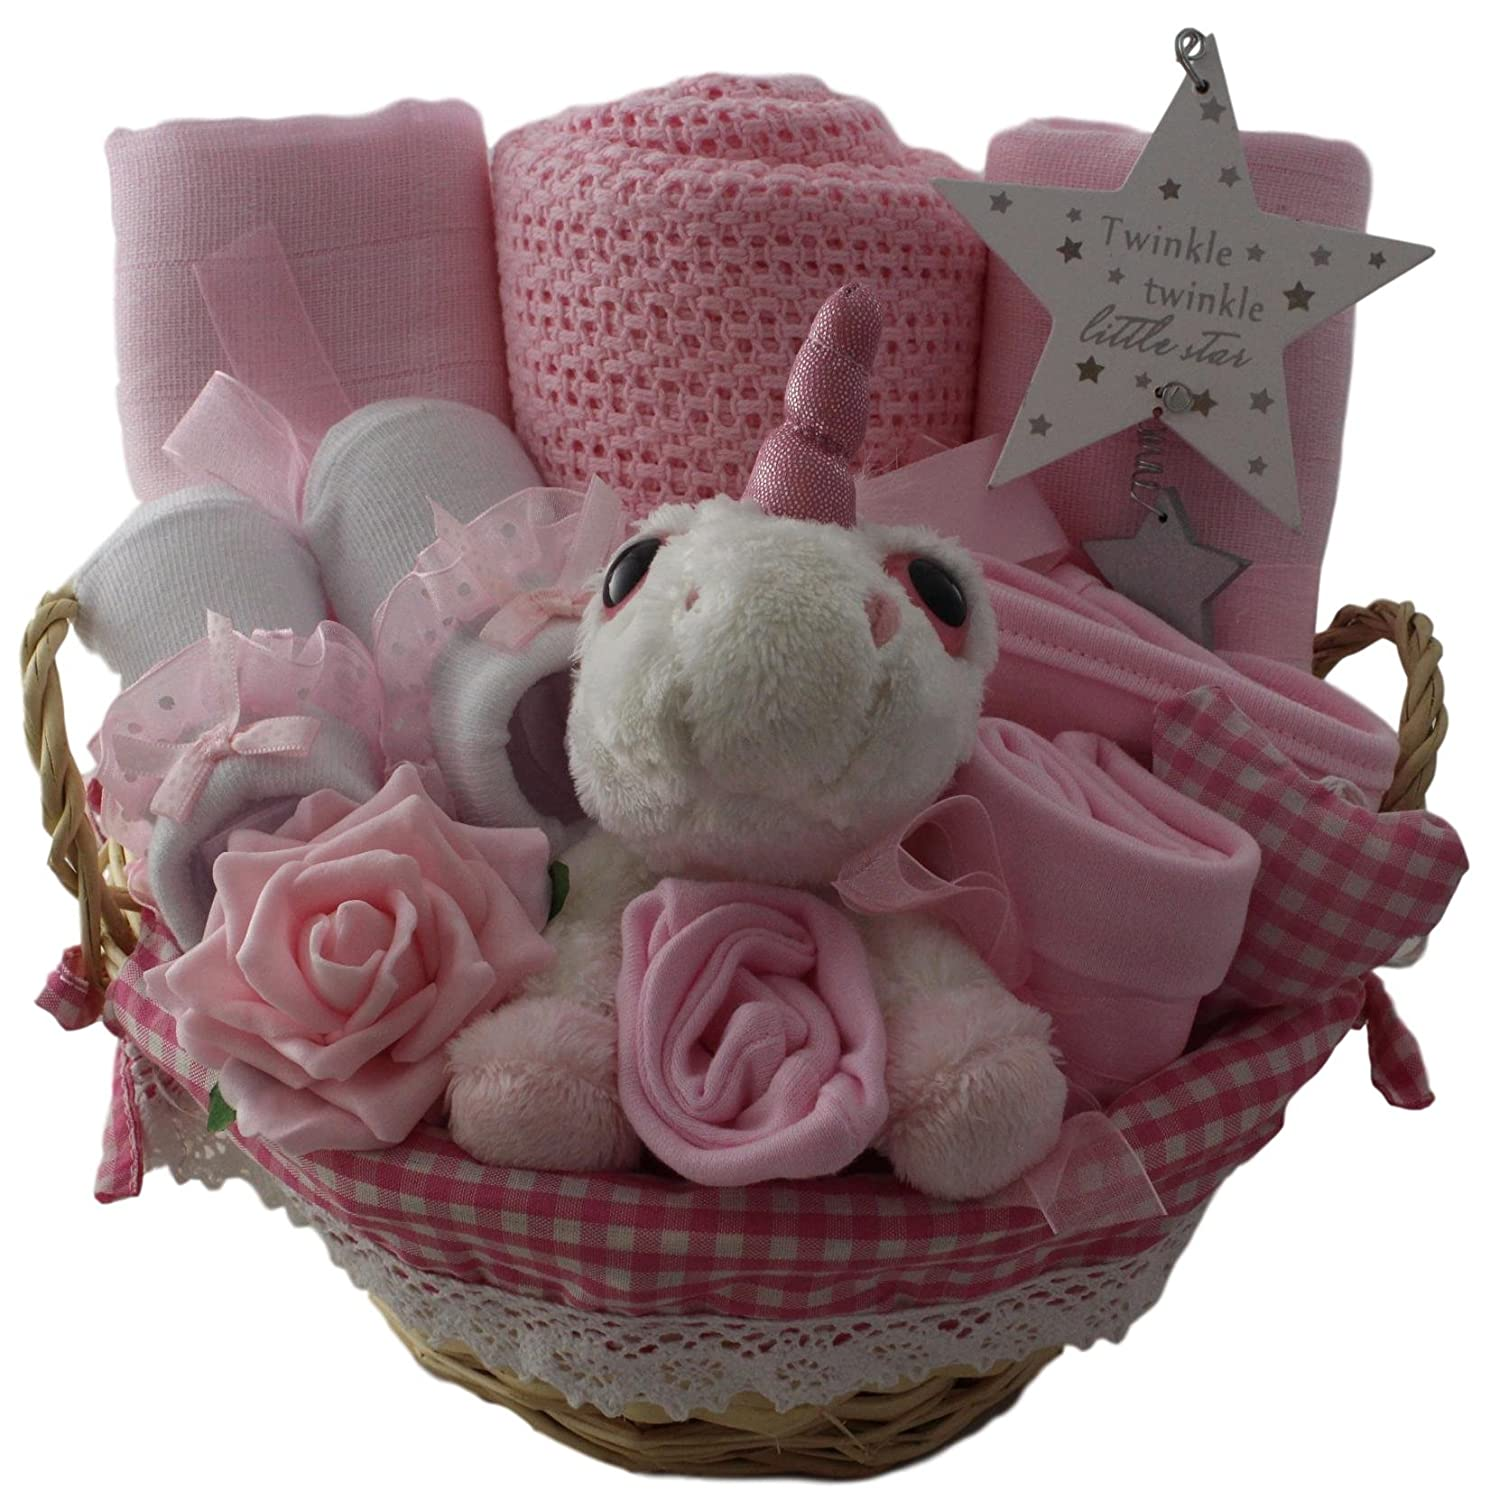 Baby girl gift basket baby girl gift hamper unicorn girl baby shower gift new baby girl gift Unique Baby Gift Baskets